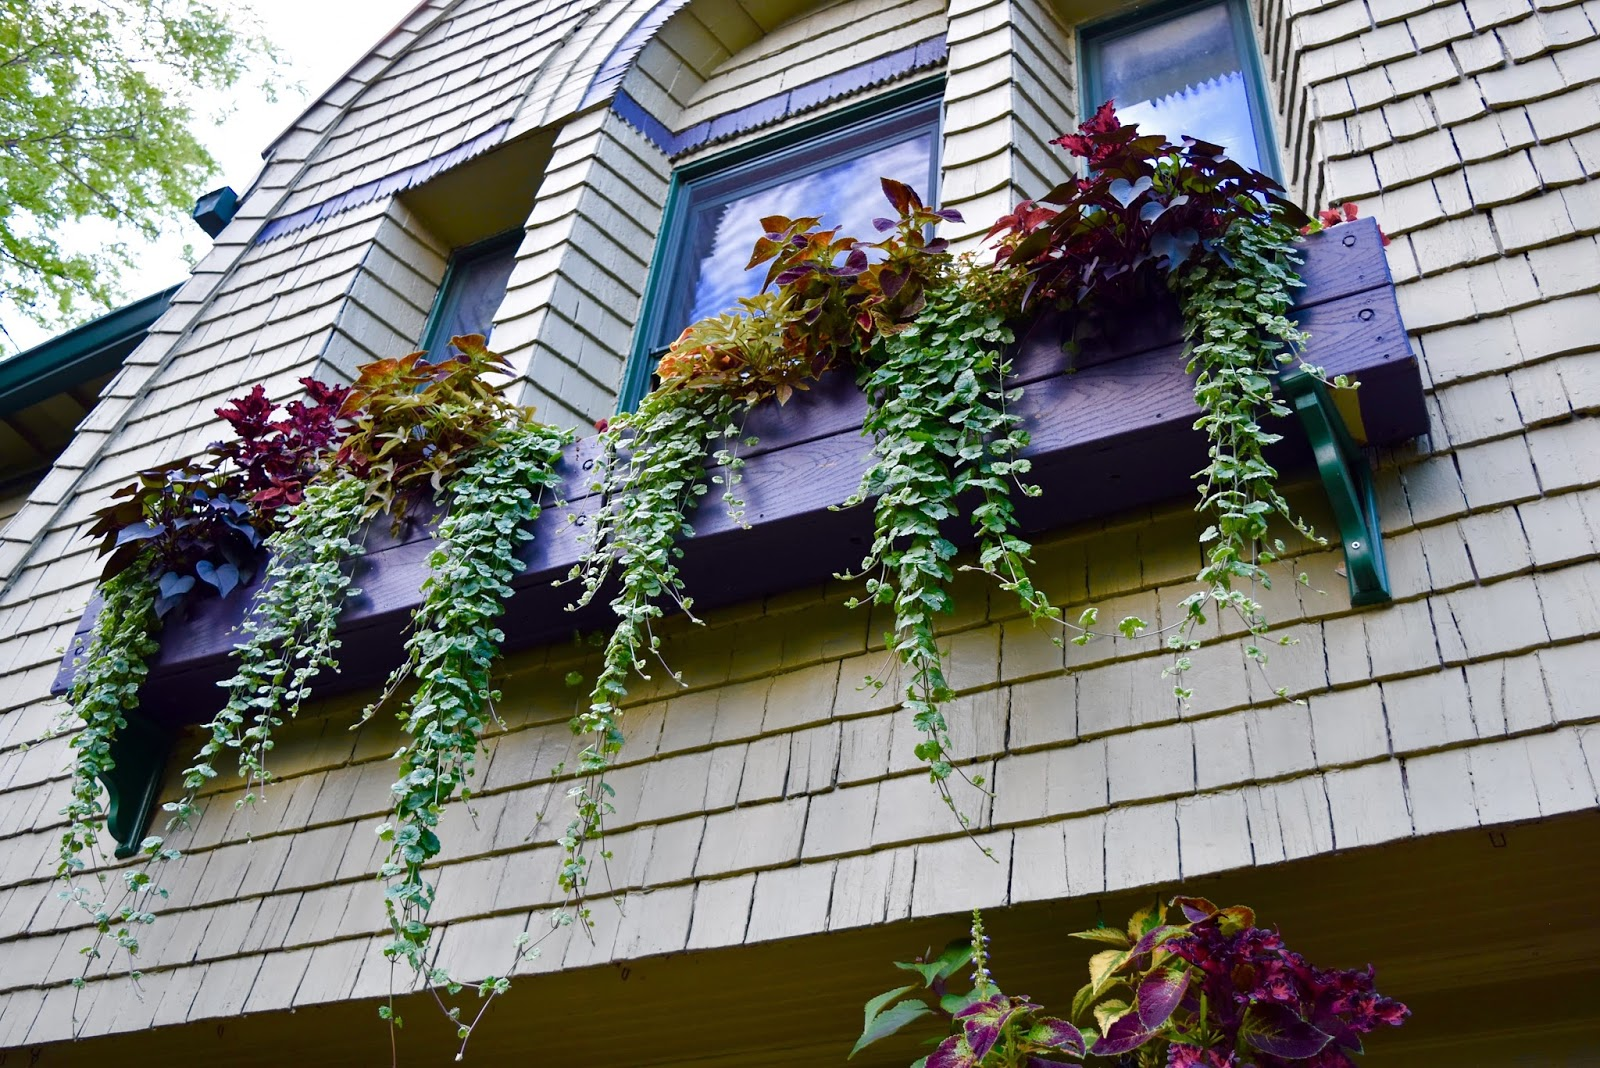 Climbing vines for walls - This Year S Window Boxes And Cone Baskets Wall Hanging Grate Climbing Vines Pots Planters And Vertical Succulent Gardens Came Out Great